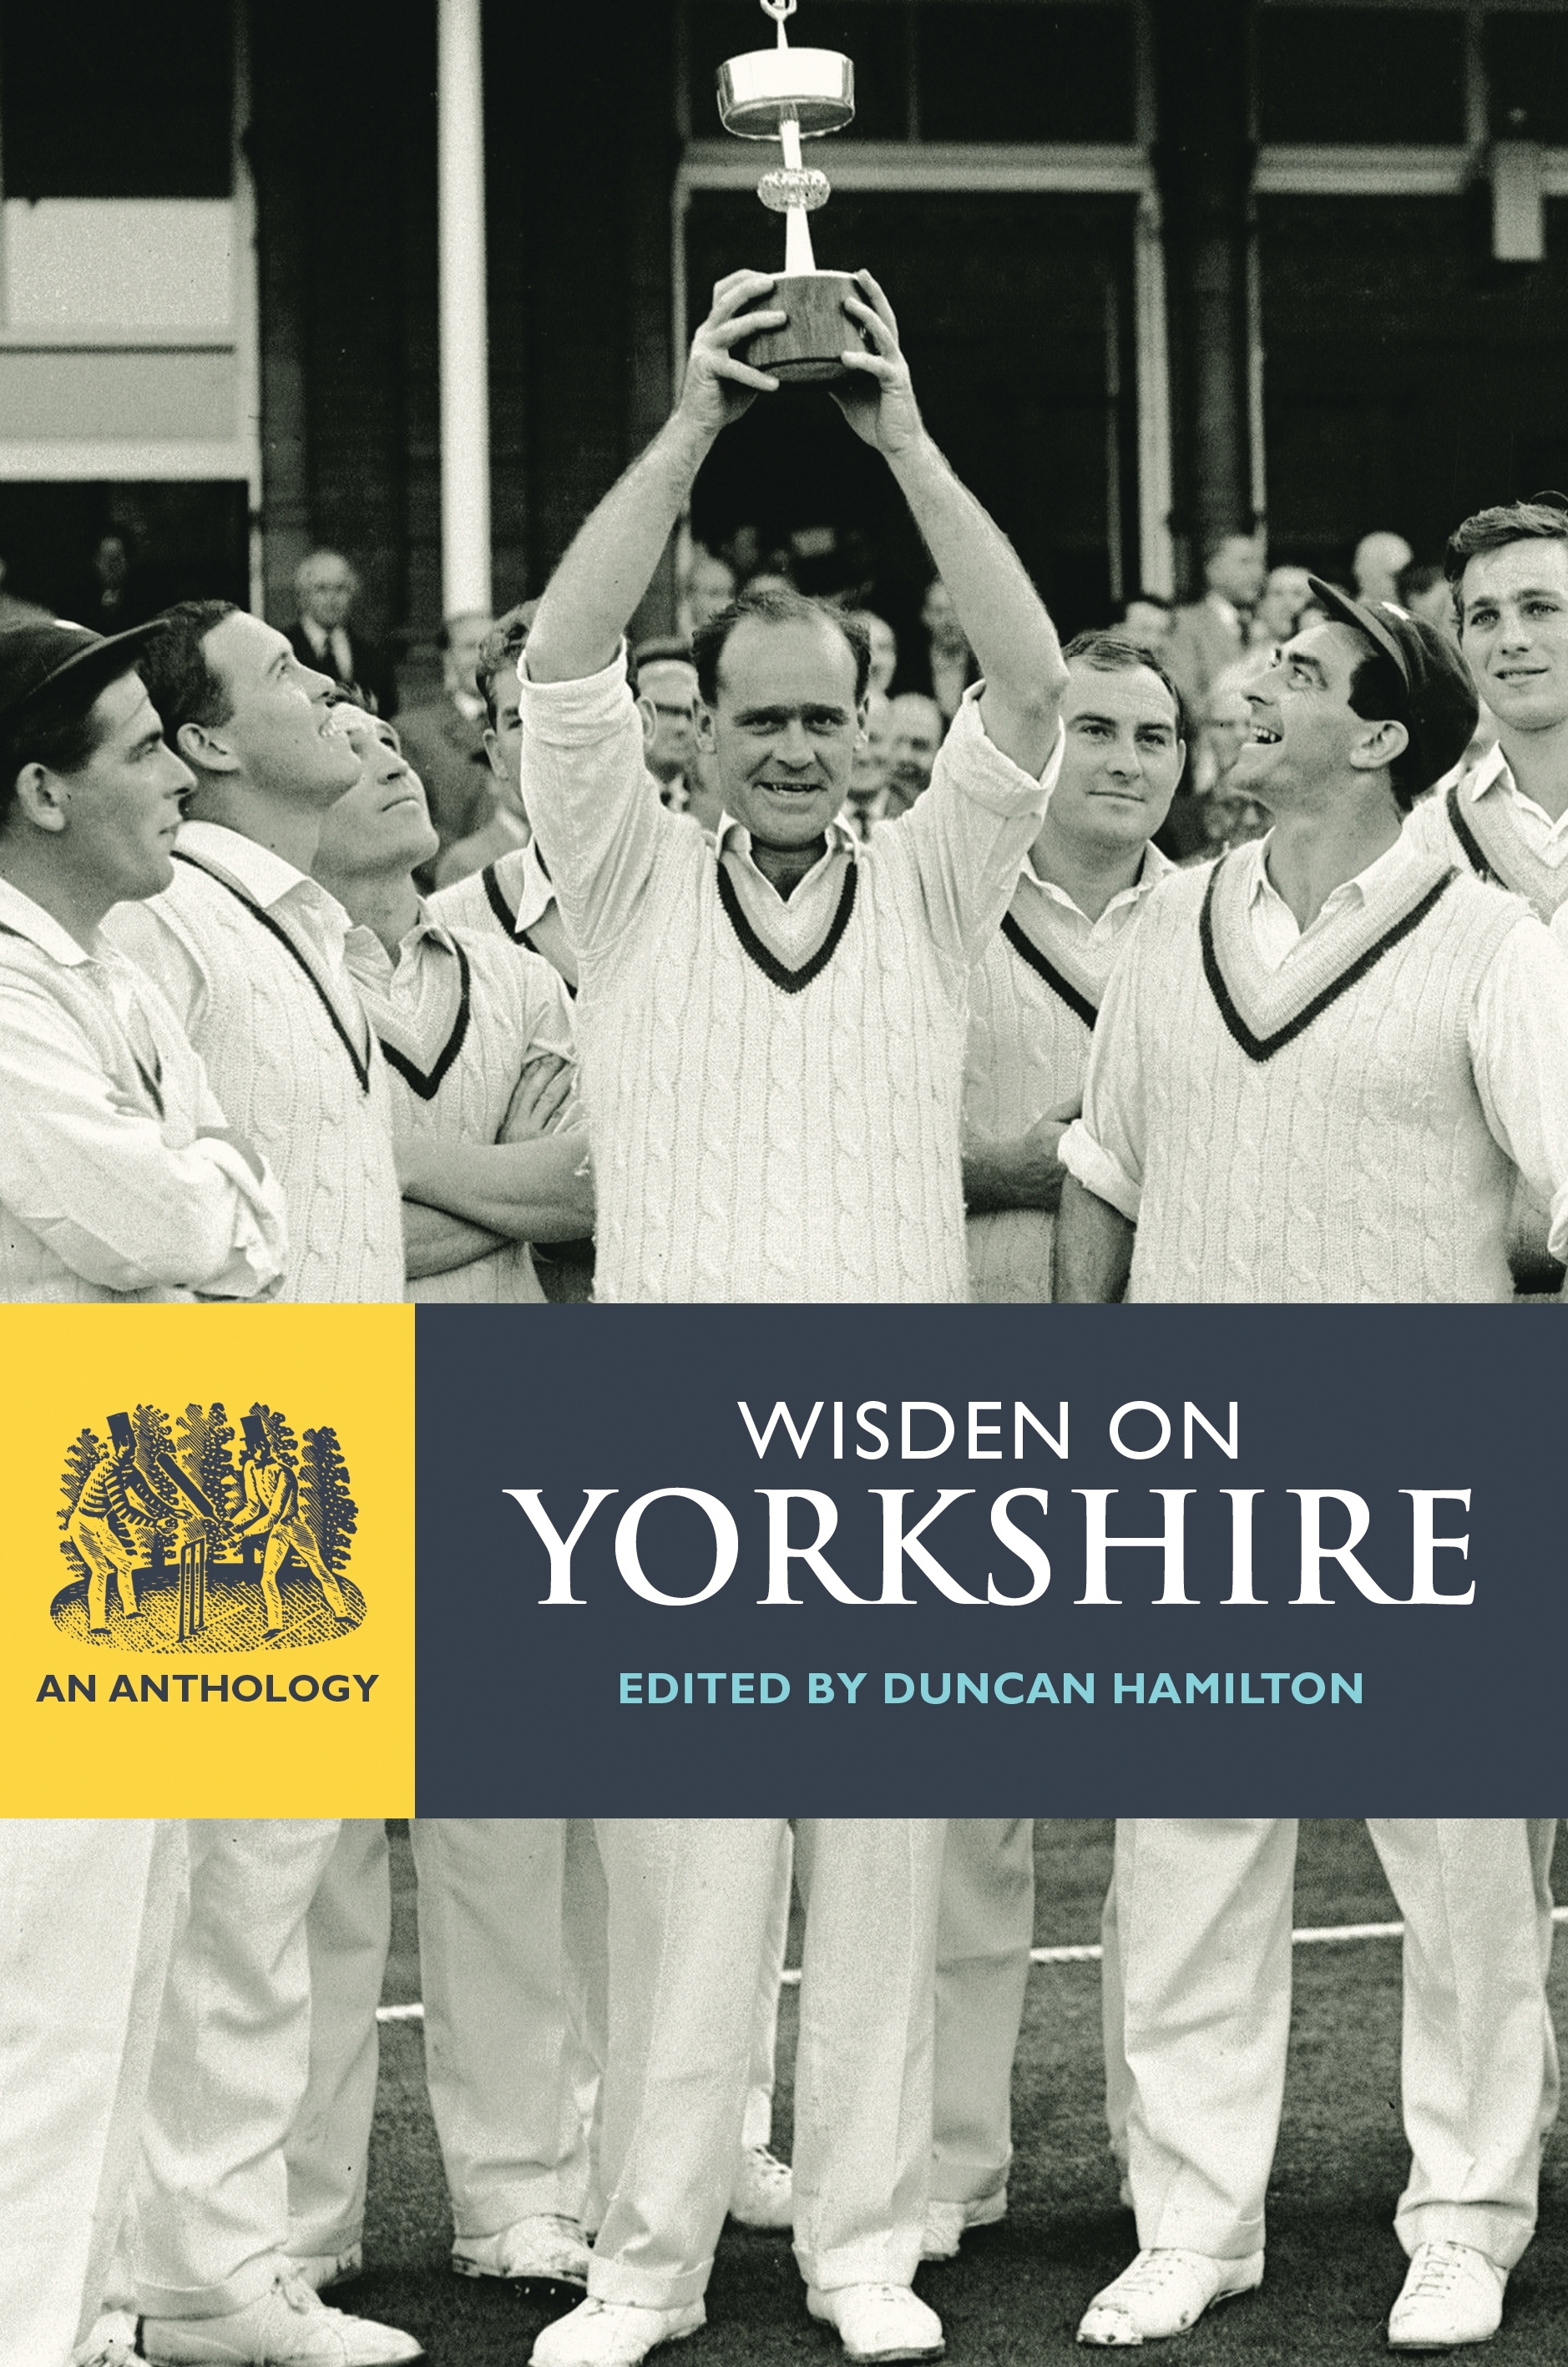 Wisden on Yorkshire An Anthology